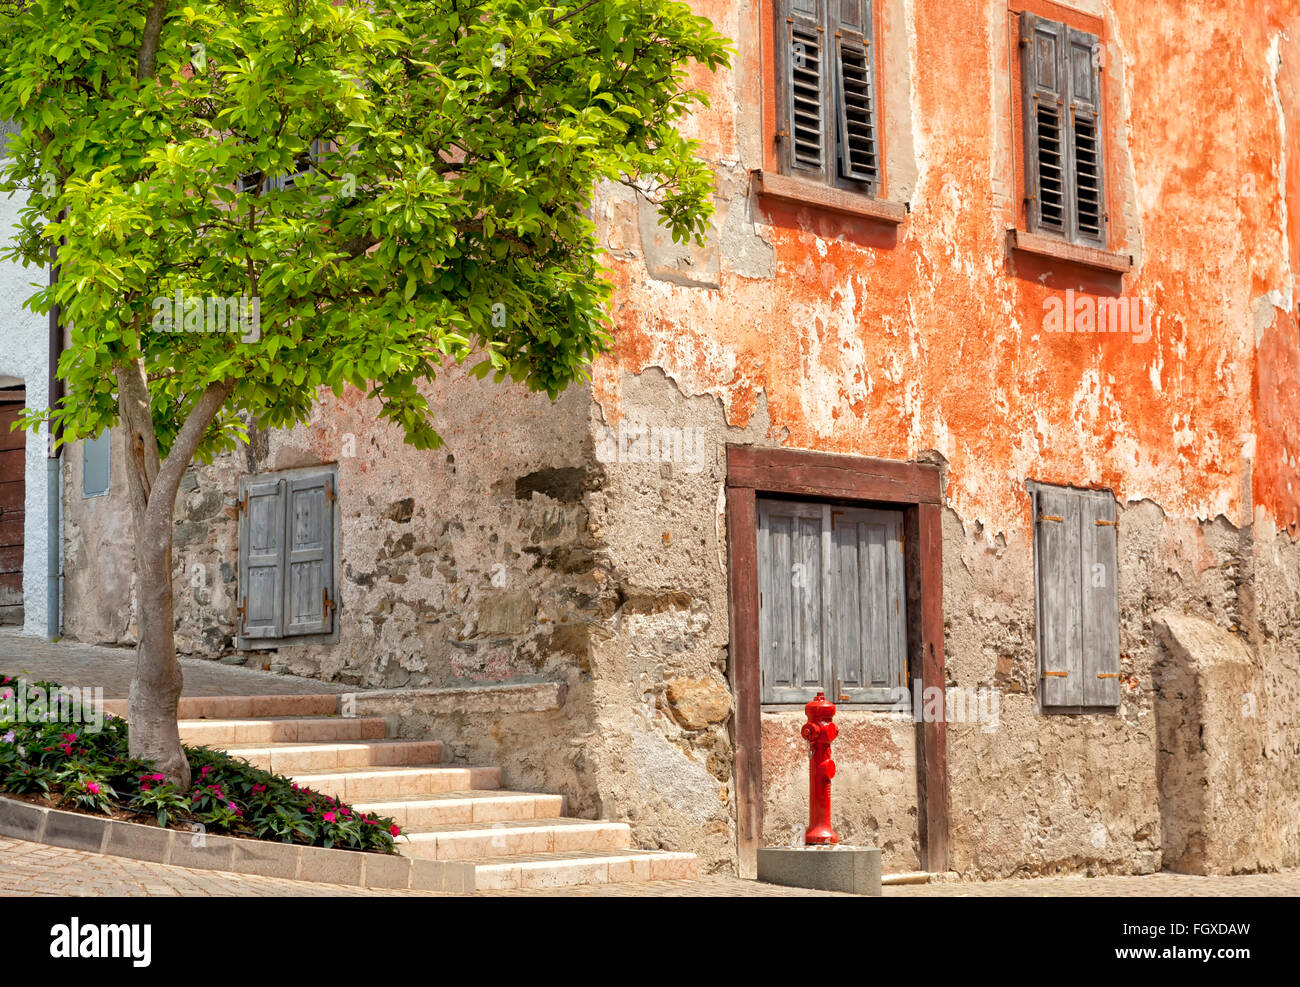 Old red historic corner house with aged walls and shutter windows, on cobbled street, with red water hydrant and - Stock Image